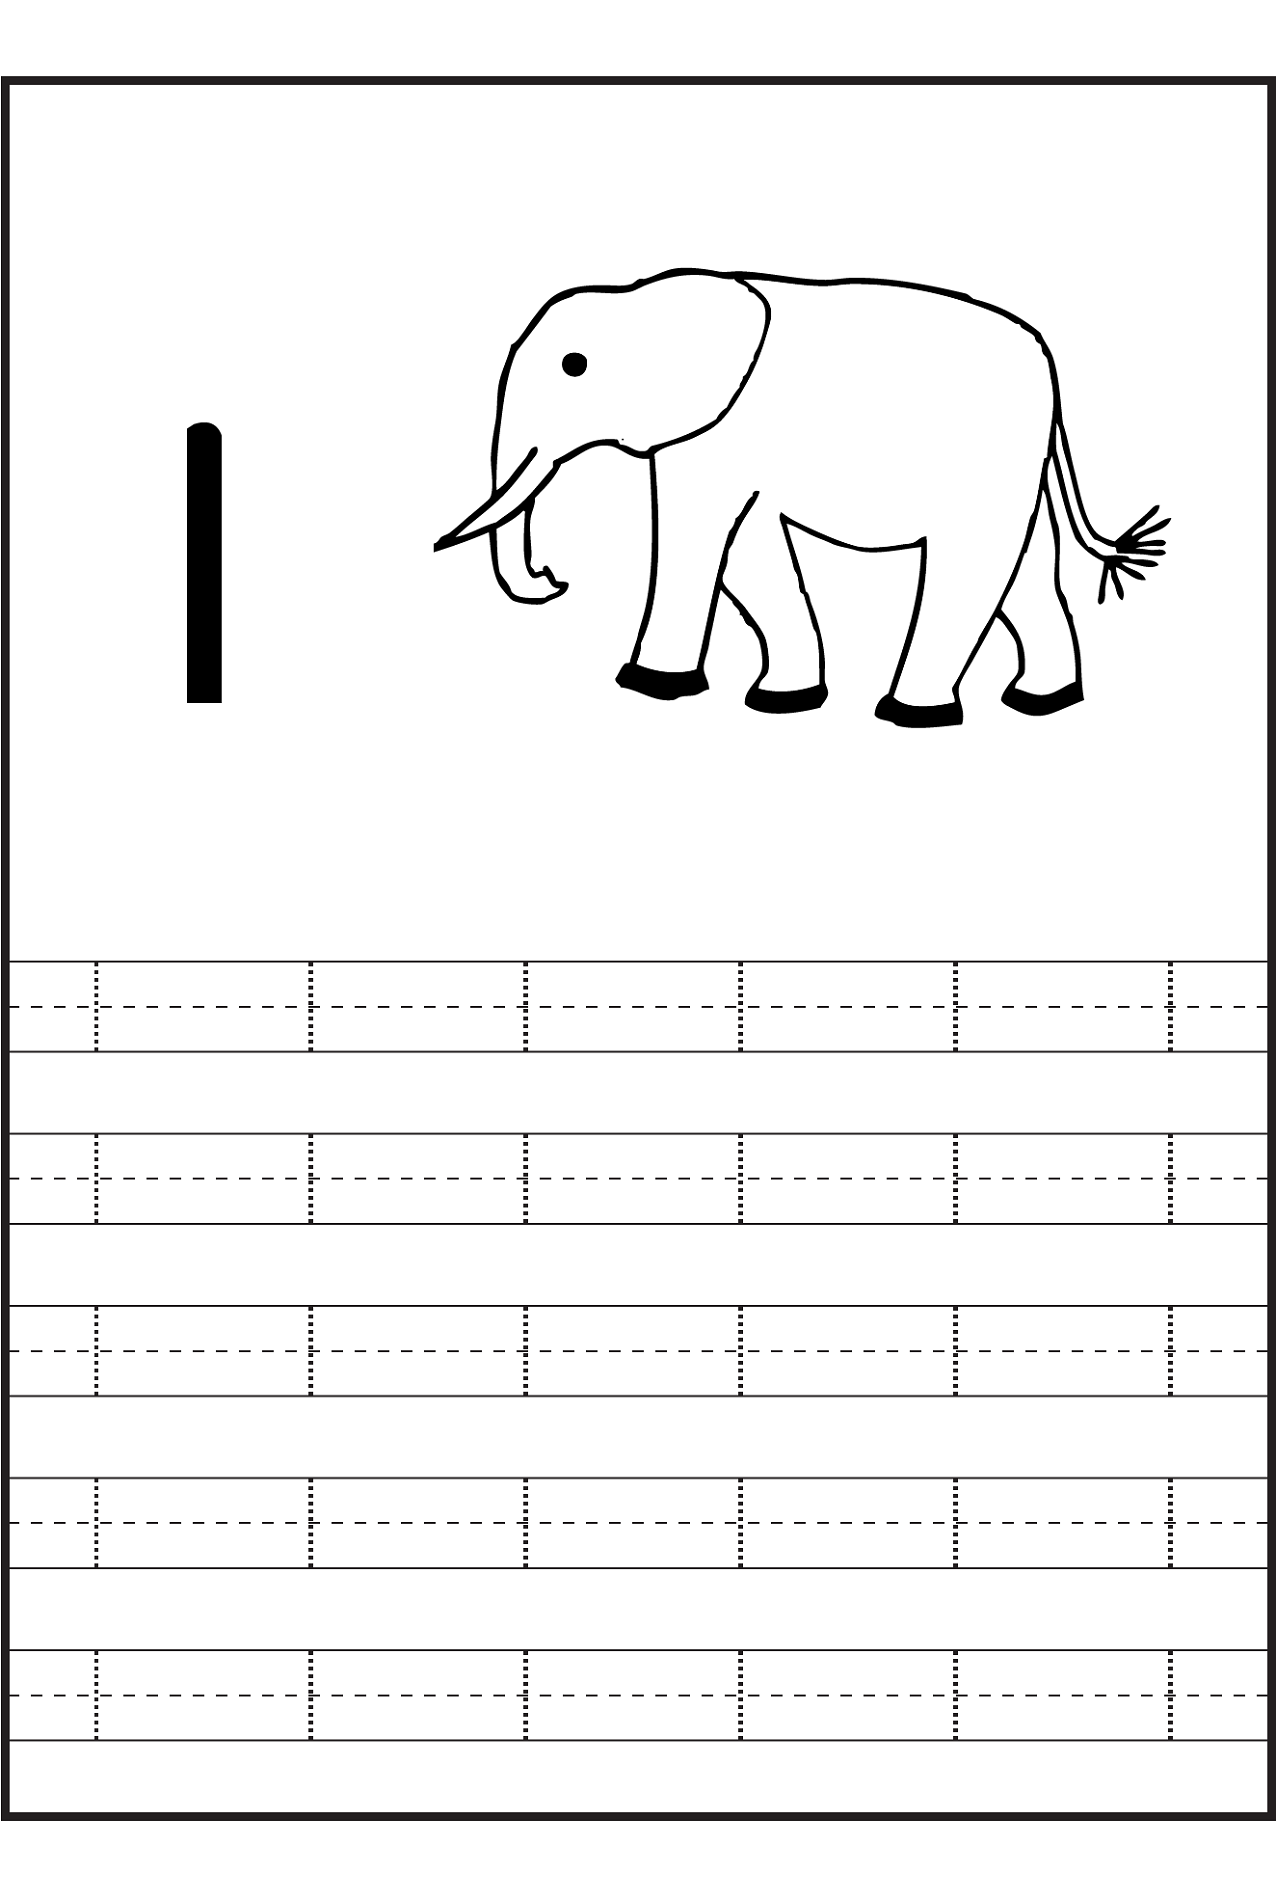 Number Trace Worksheets for Kids Tracing Fun – Number Tracing Worksheets